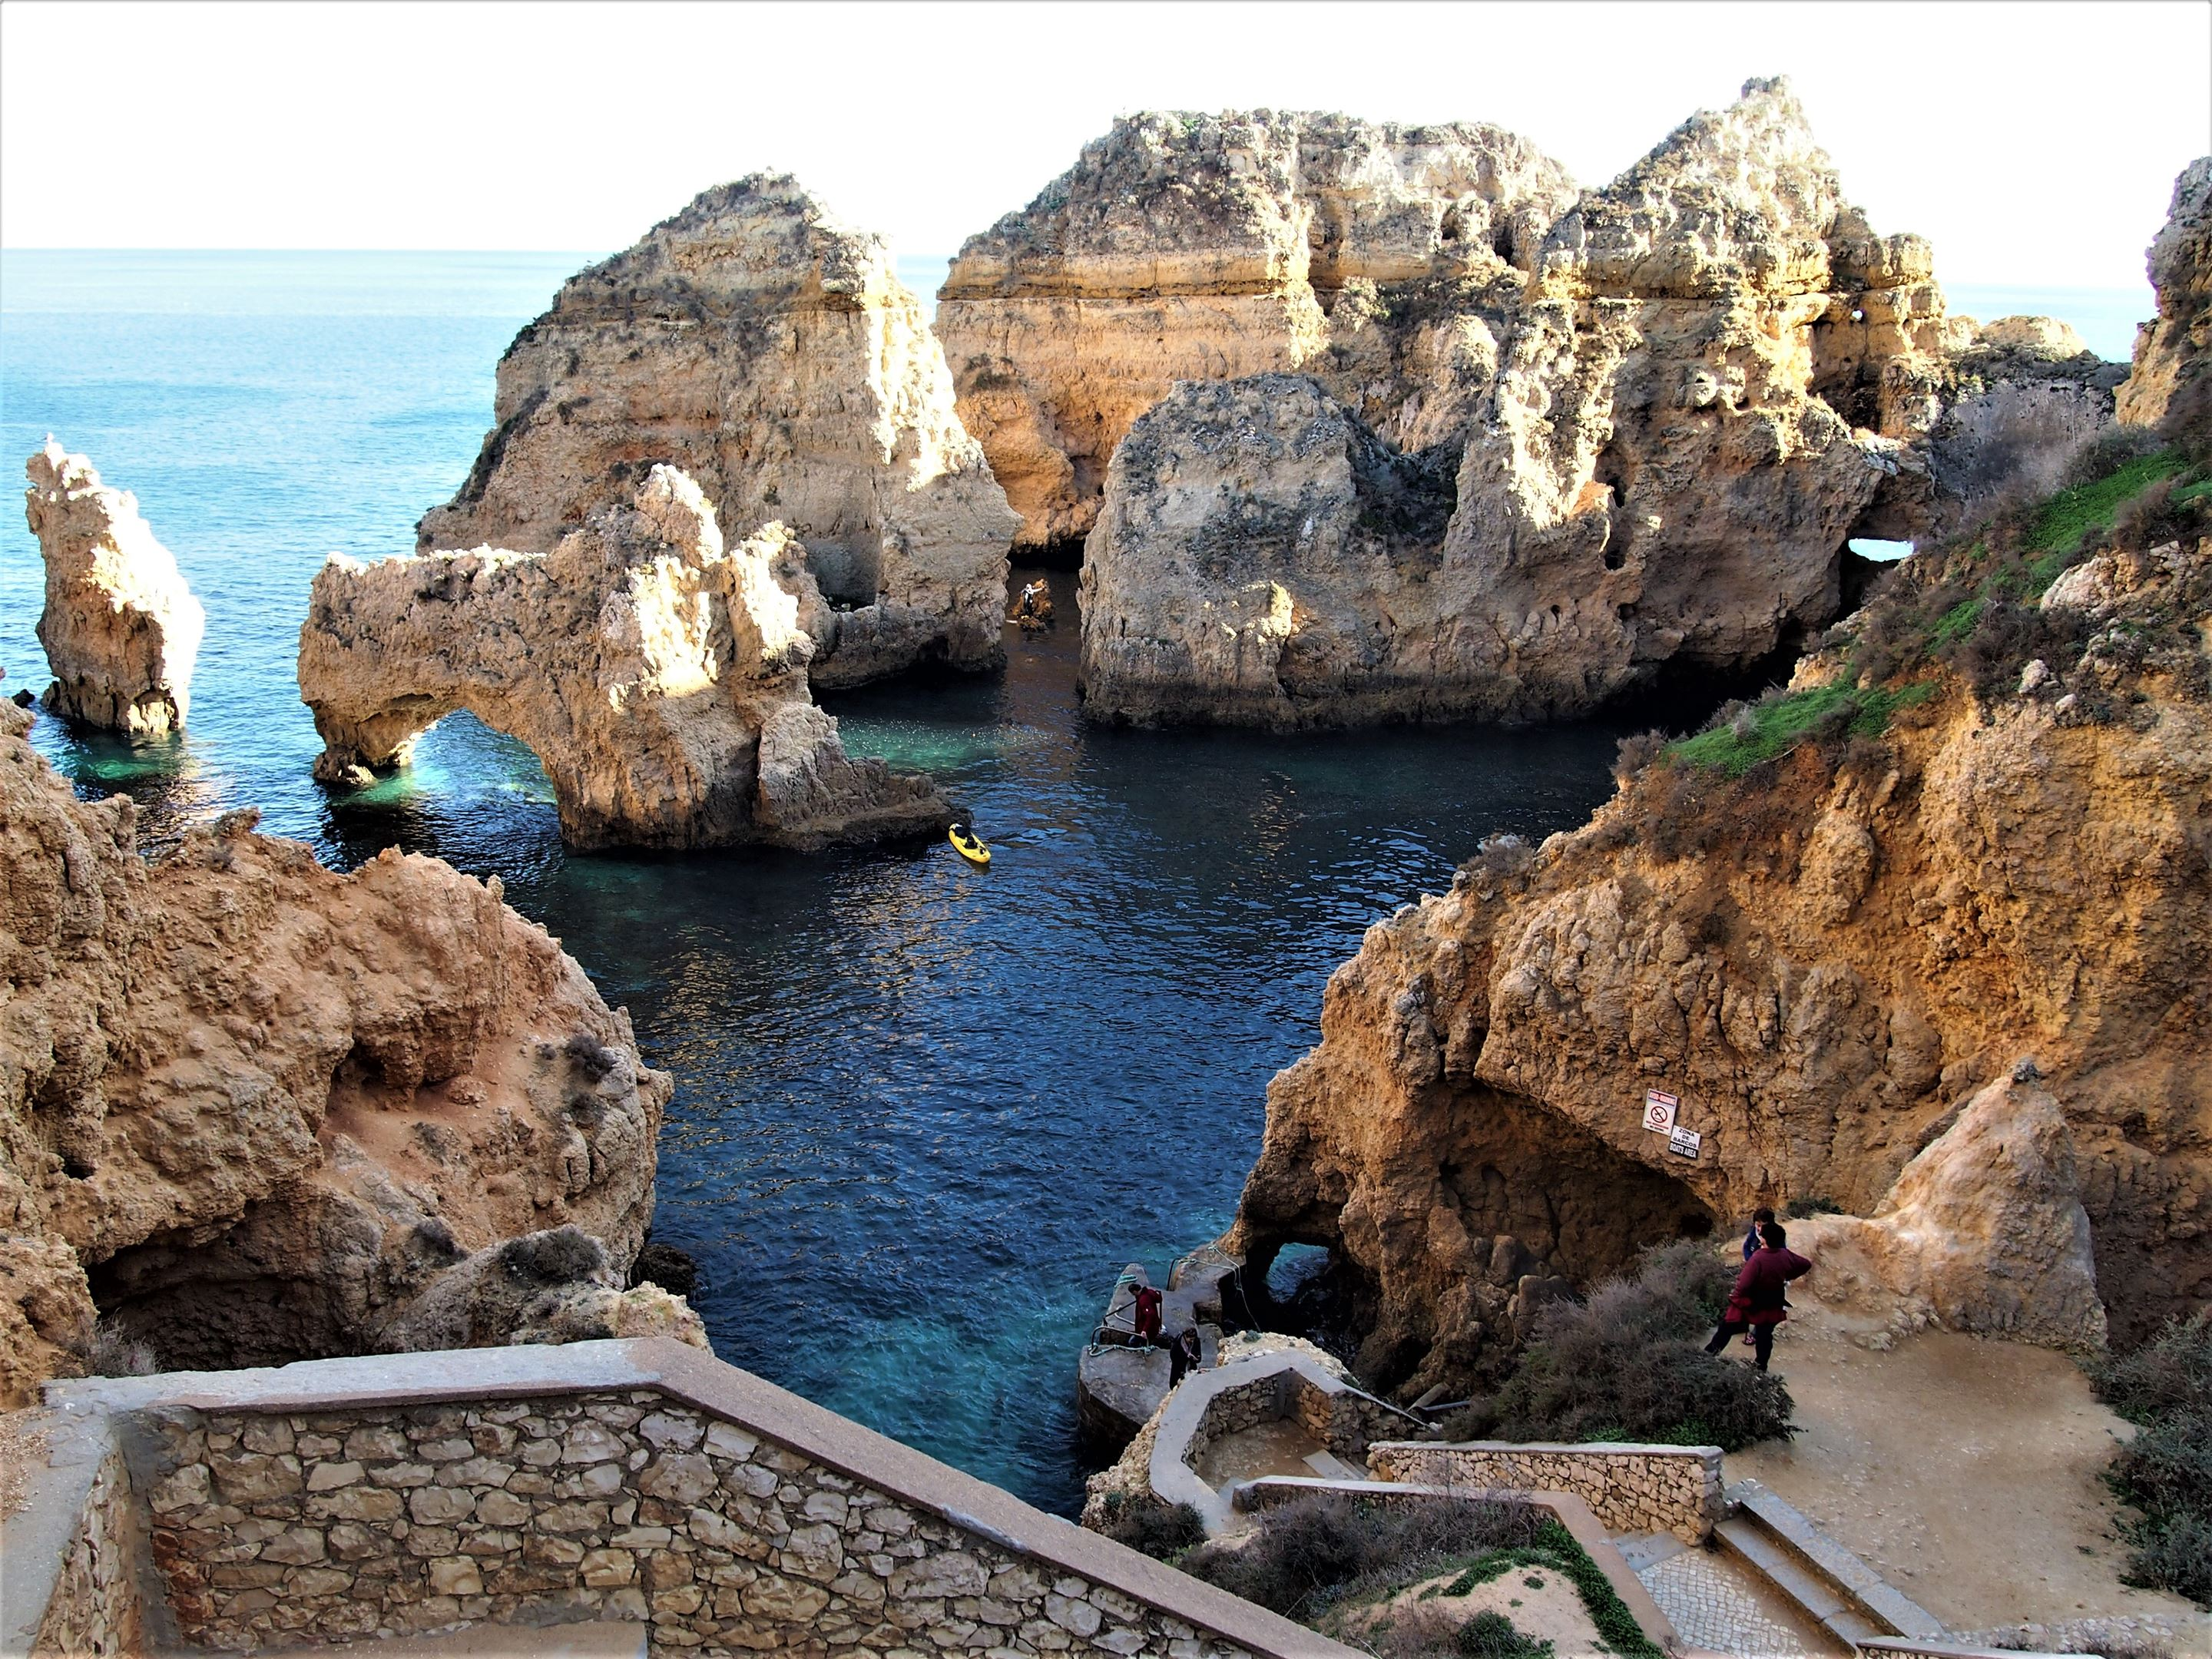 Ponta da Piedade, Lagos - a kayak is a great way to see these cliffs